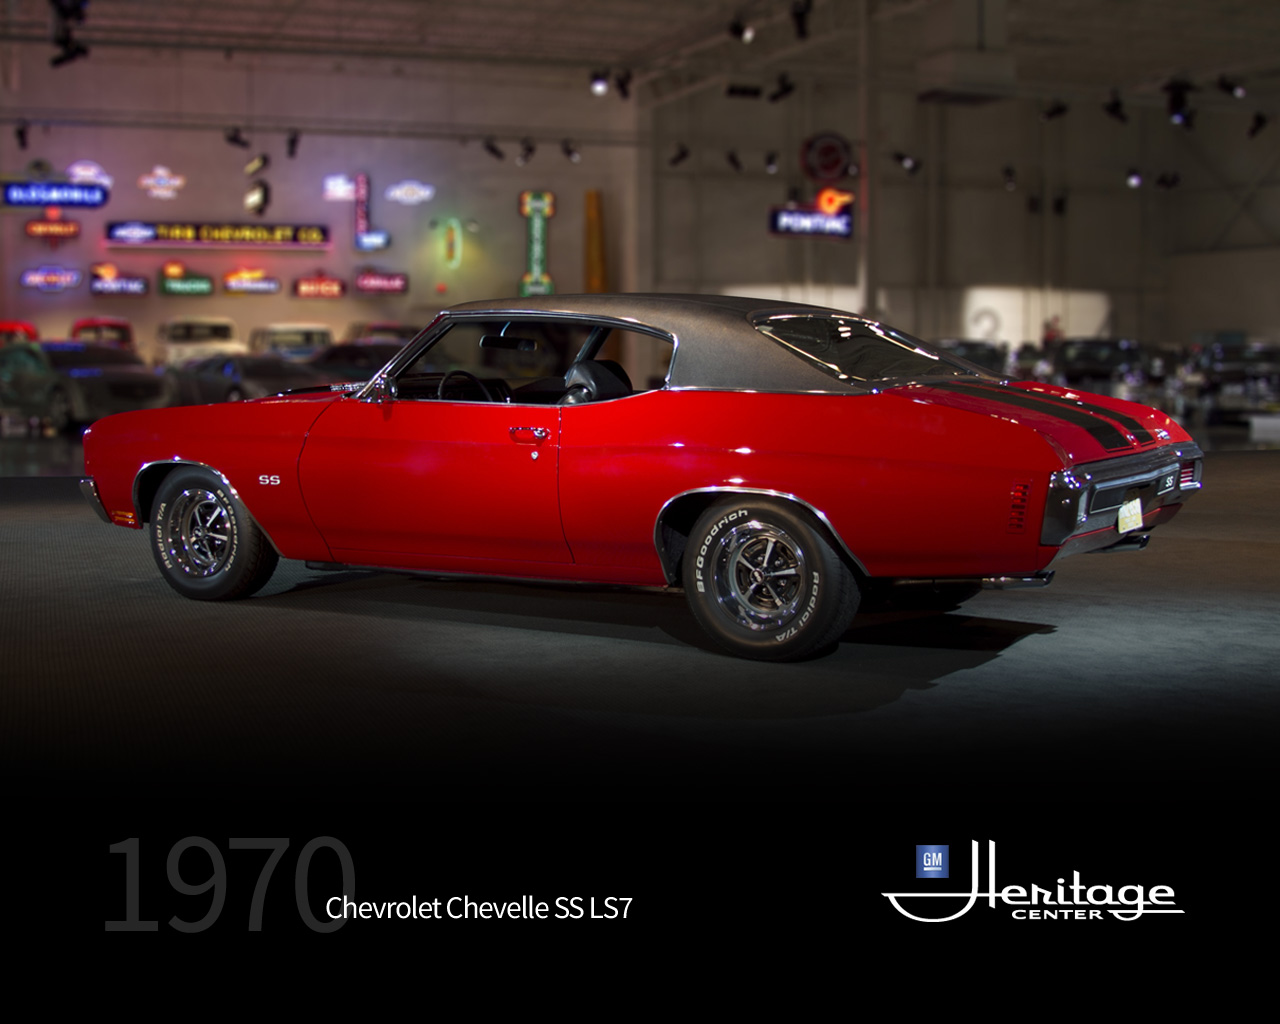 GM Heritage Center Collection 1970 Chevrolet Chevelle SS LS7 1280x1024